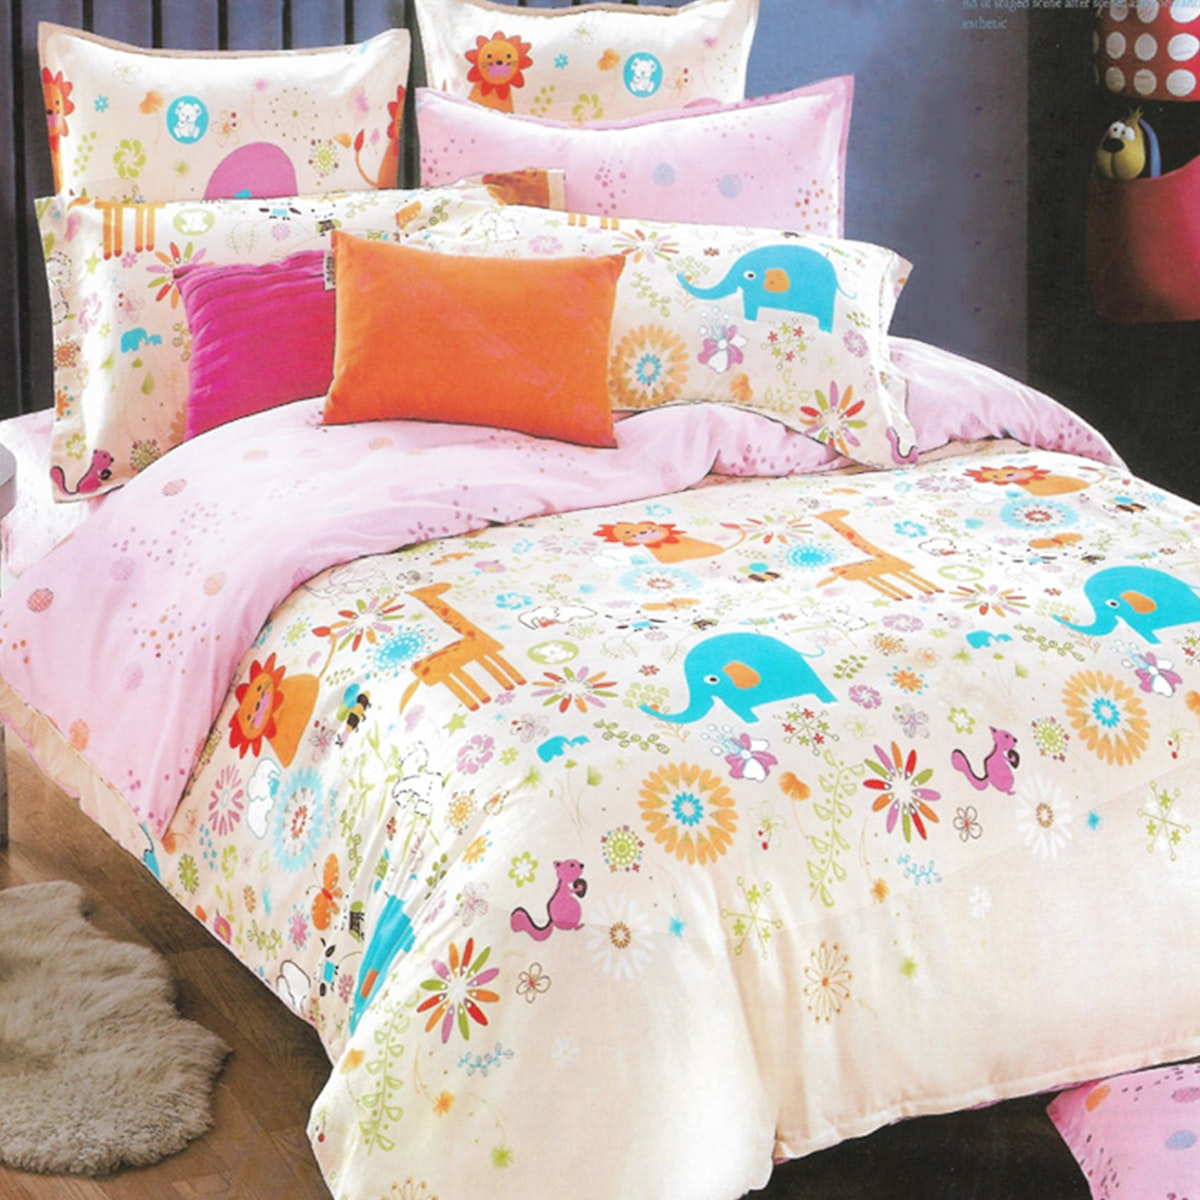 Sleep Buddy Set Sprei dan bed cover Animal Pigmen Katun 160x200x30